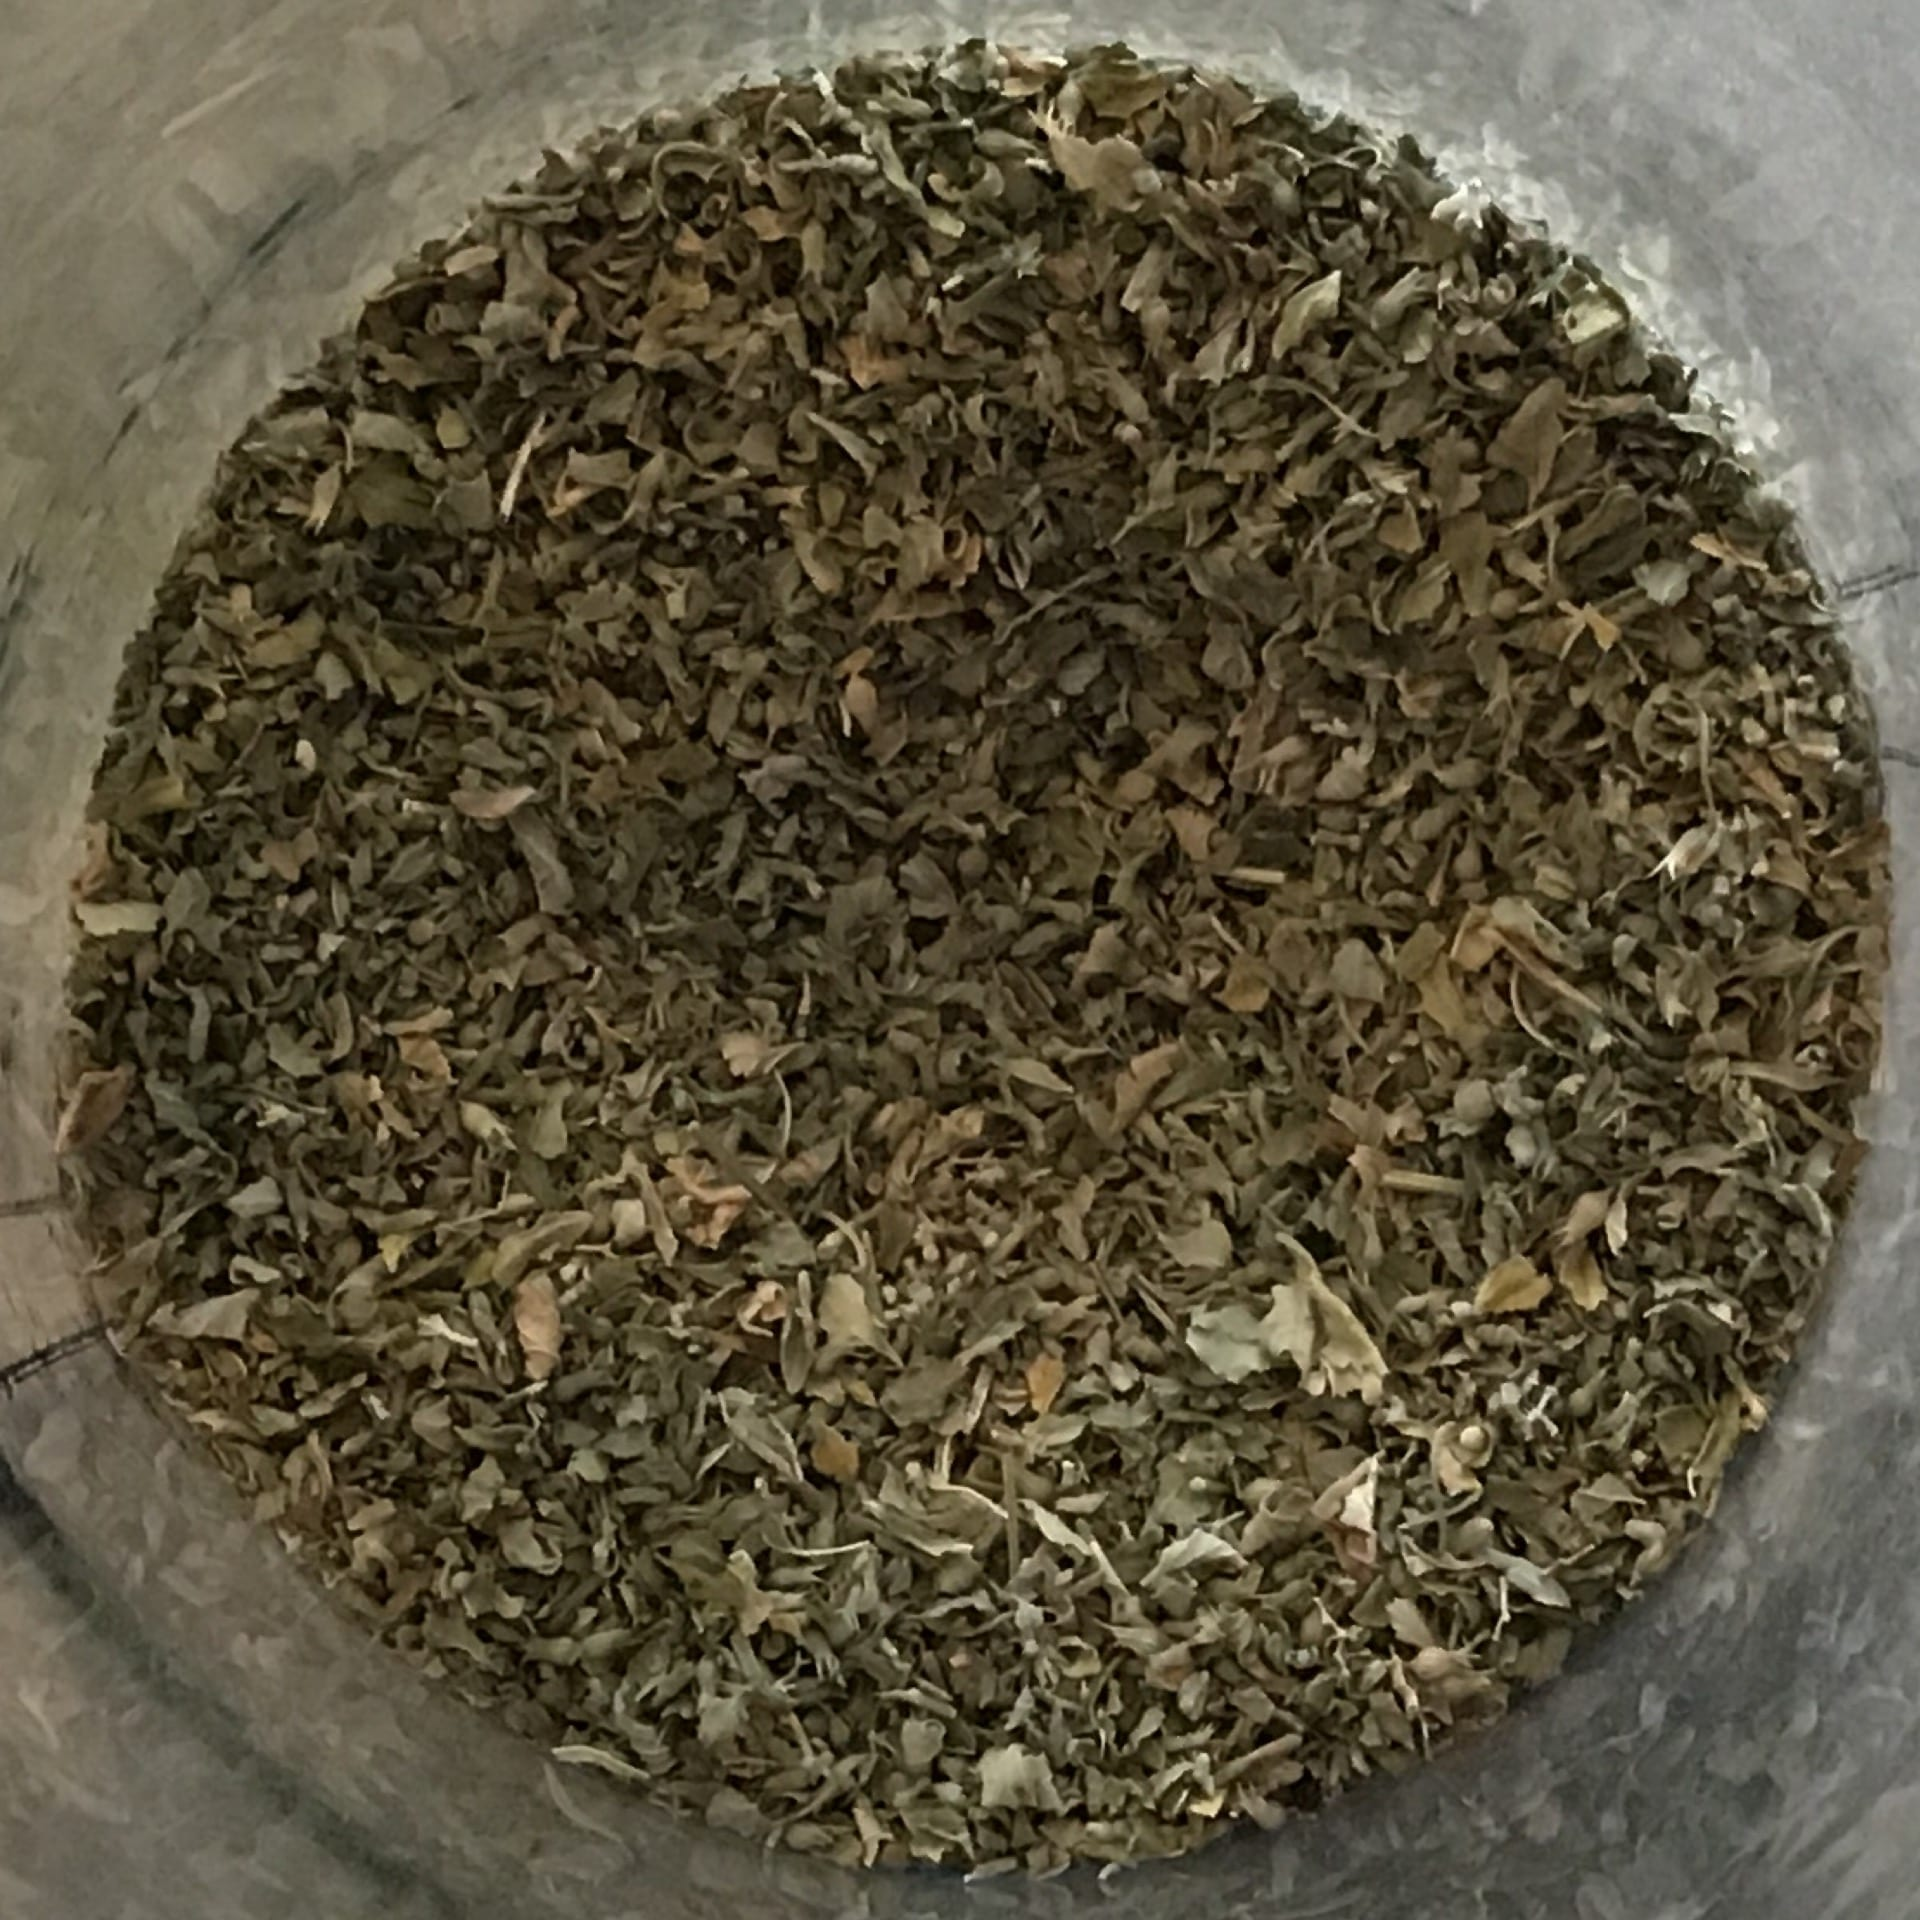 Organic Loose-leaf Catnip buy plastic-free by the ounce - for your cat or your own tea